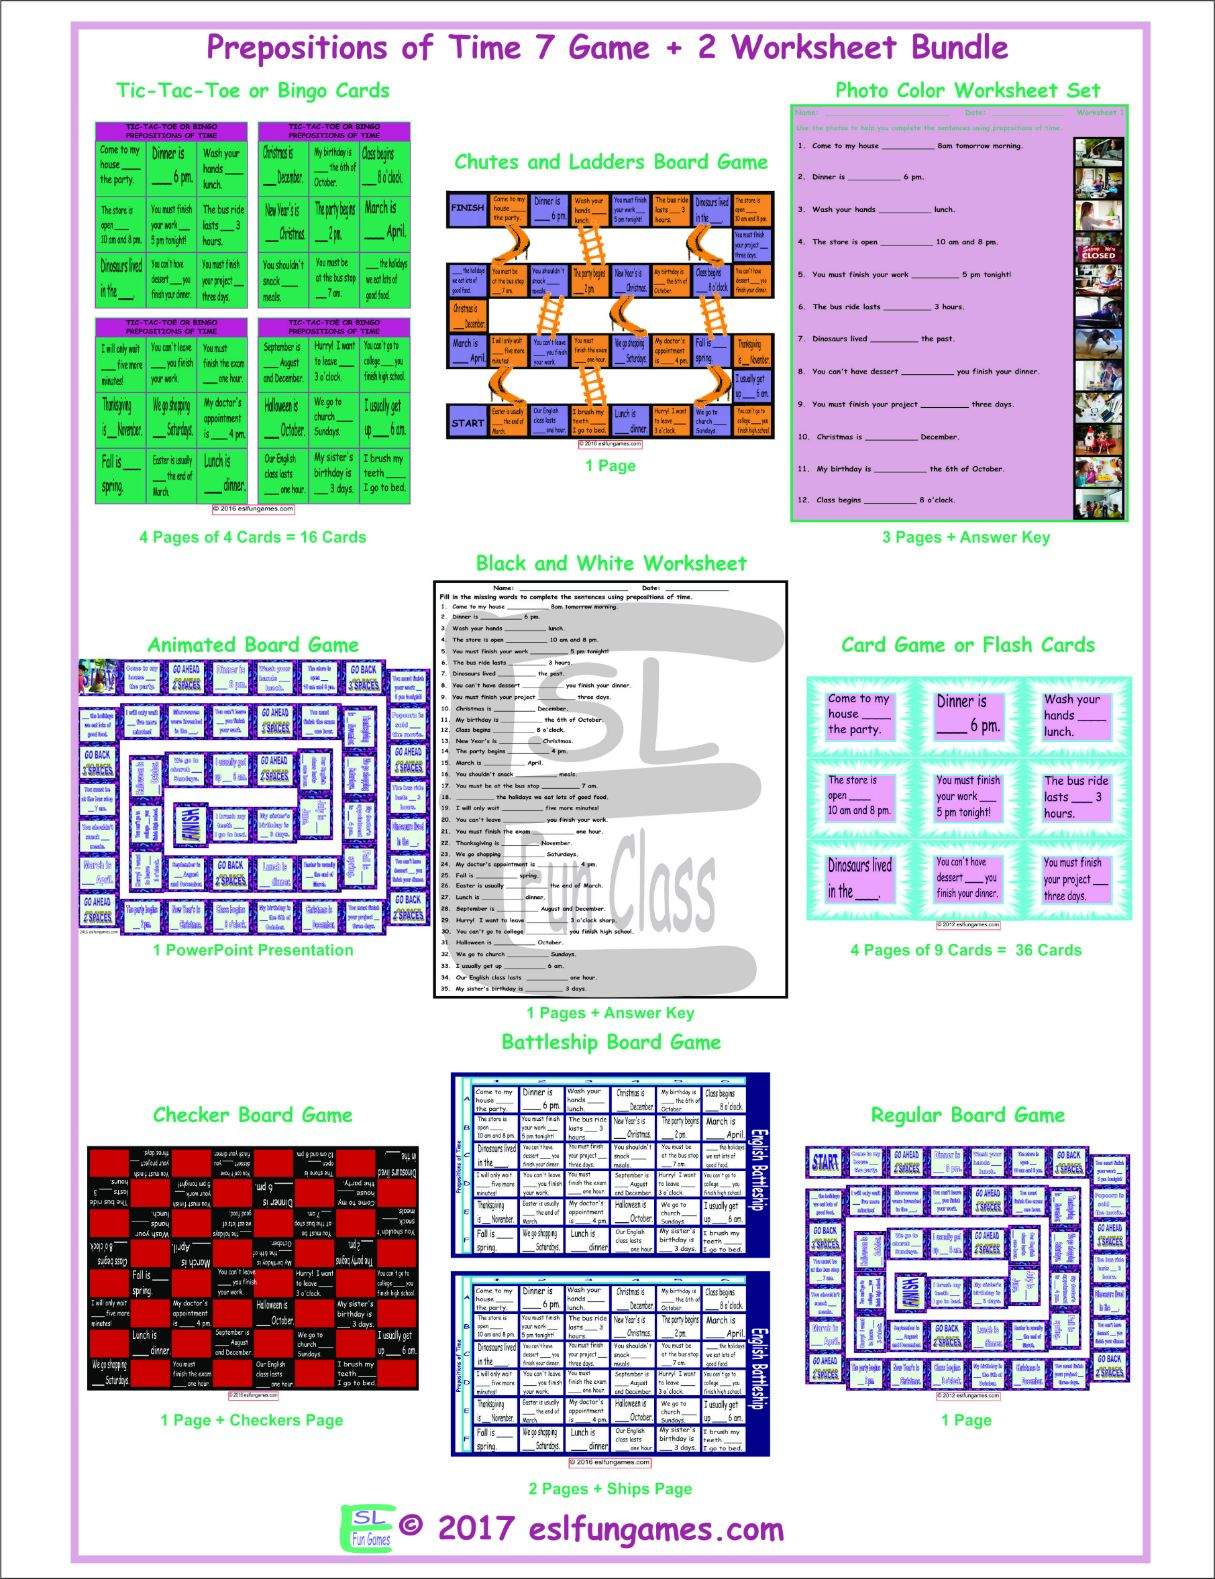 Prepositions Of Time 7 Game Plus 2 Worksheet Bundle By